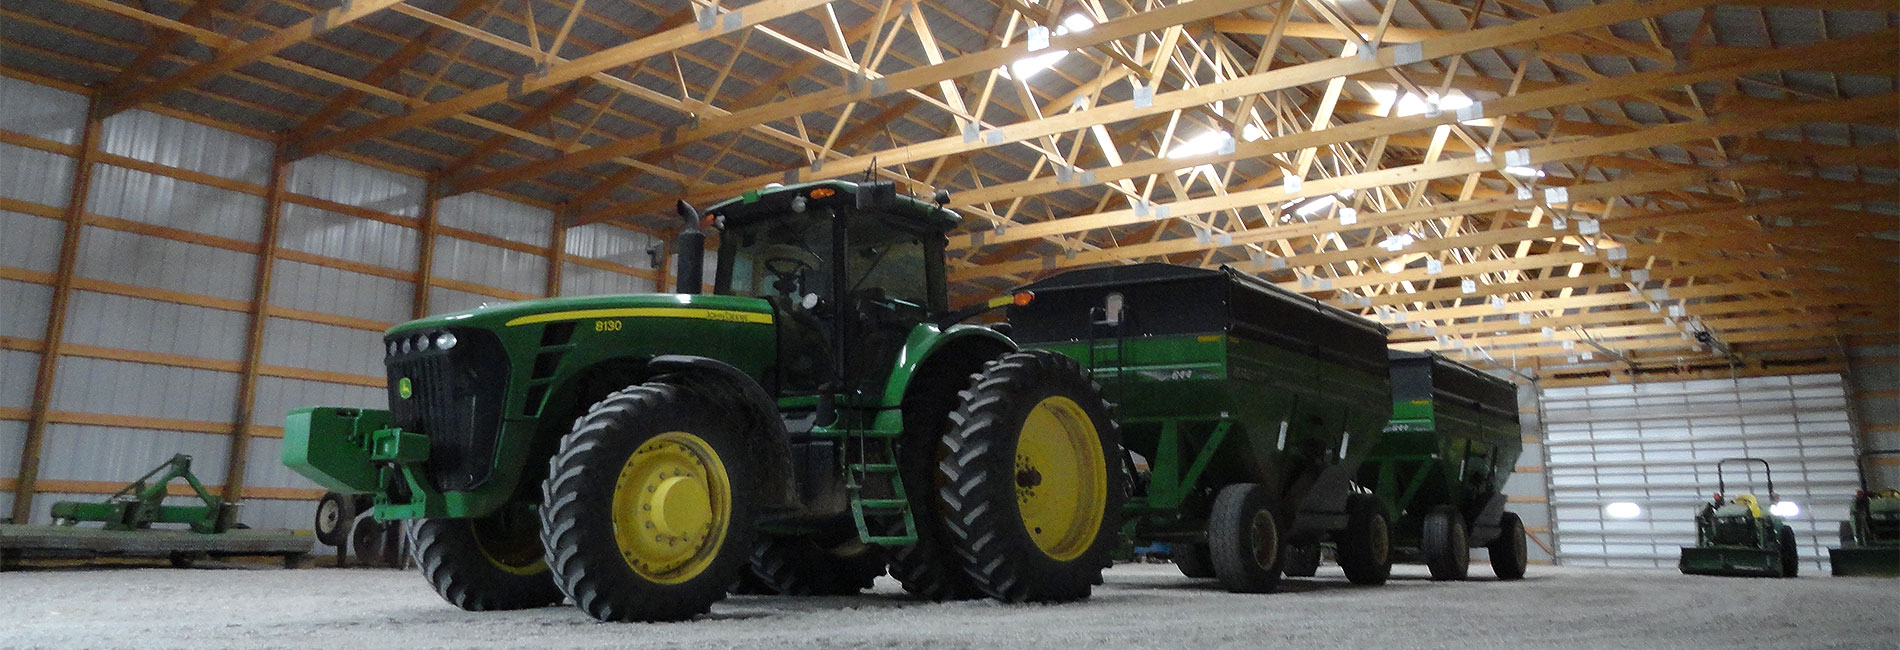 Ag Buildings and Pole Barns. Machine sheds, workshops, barns, livestock buildings, and more